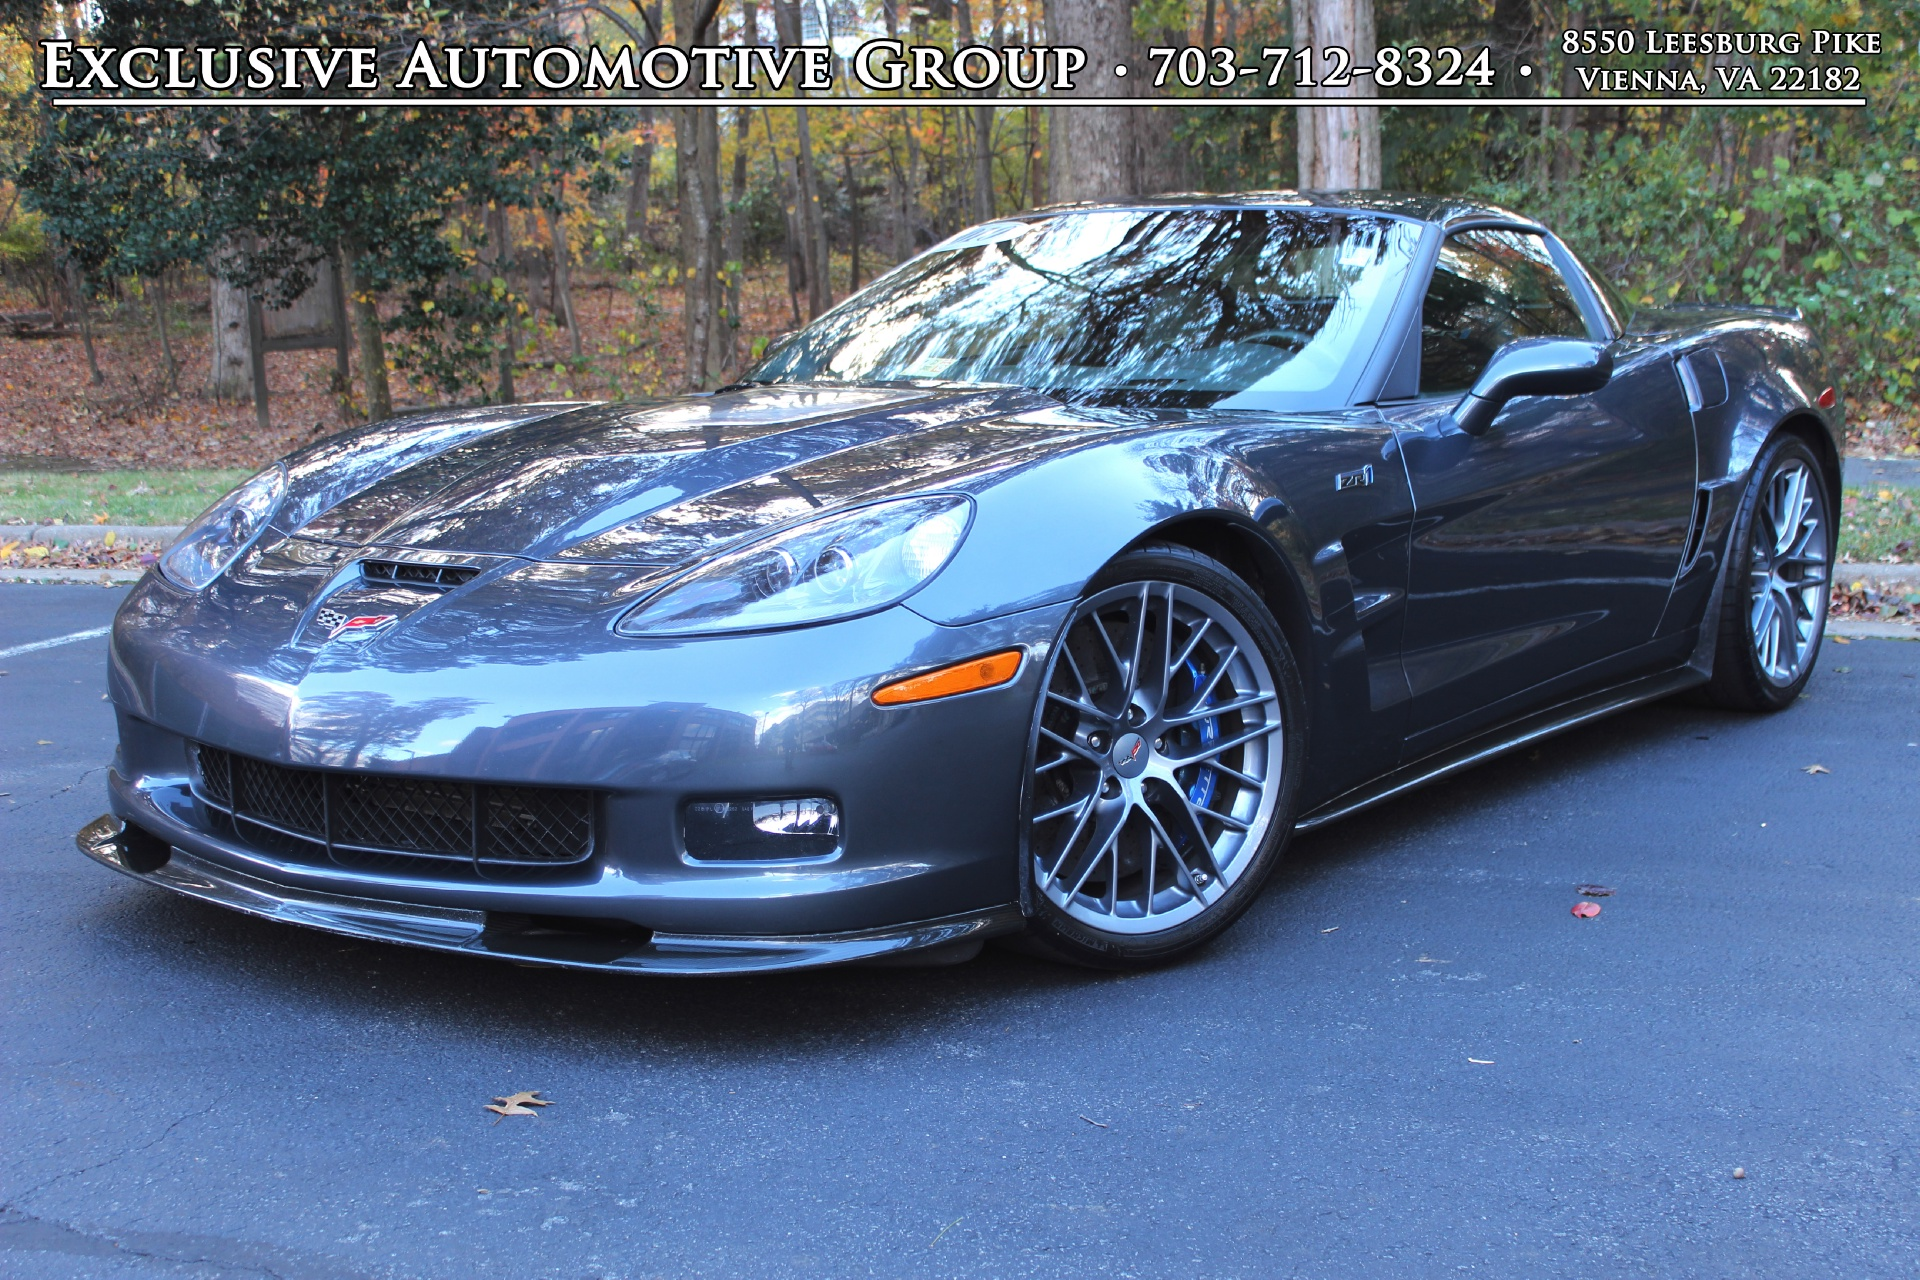 241_main_l Cool Review About Corvettes for Sale In Md with Extraordinary Images Cars Review